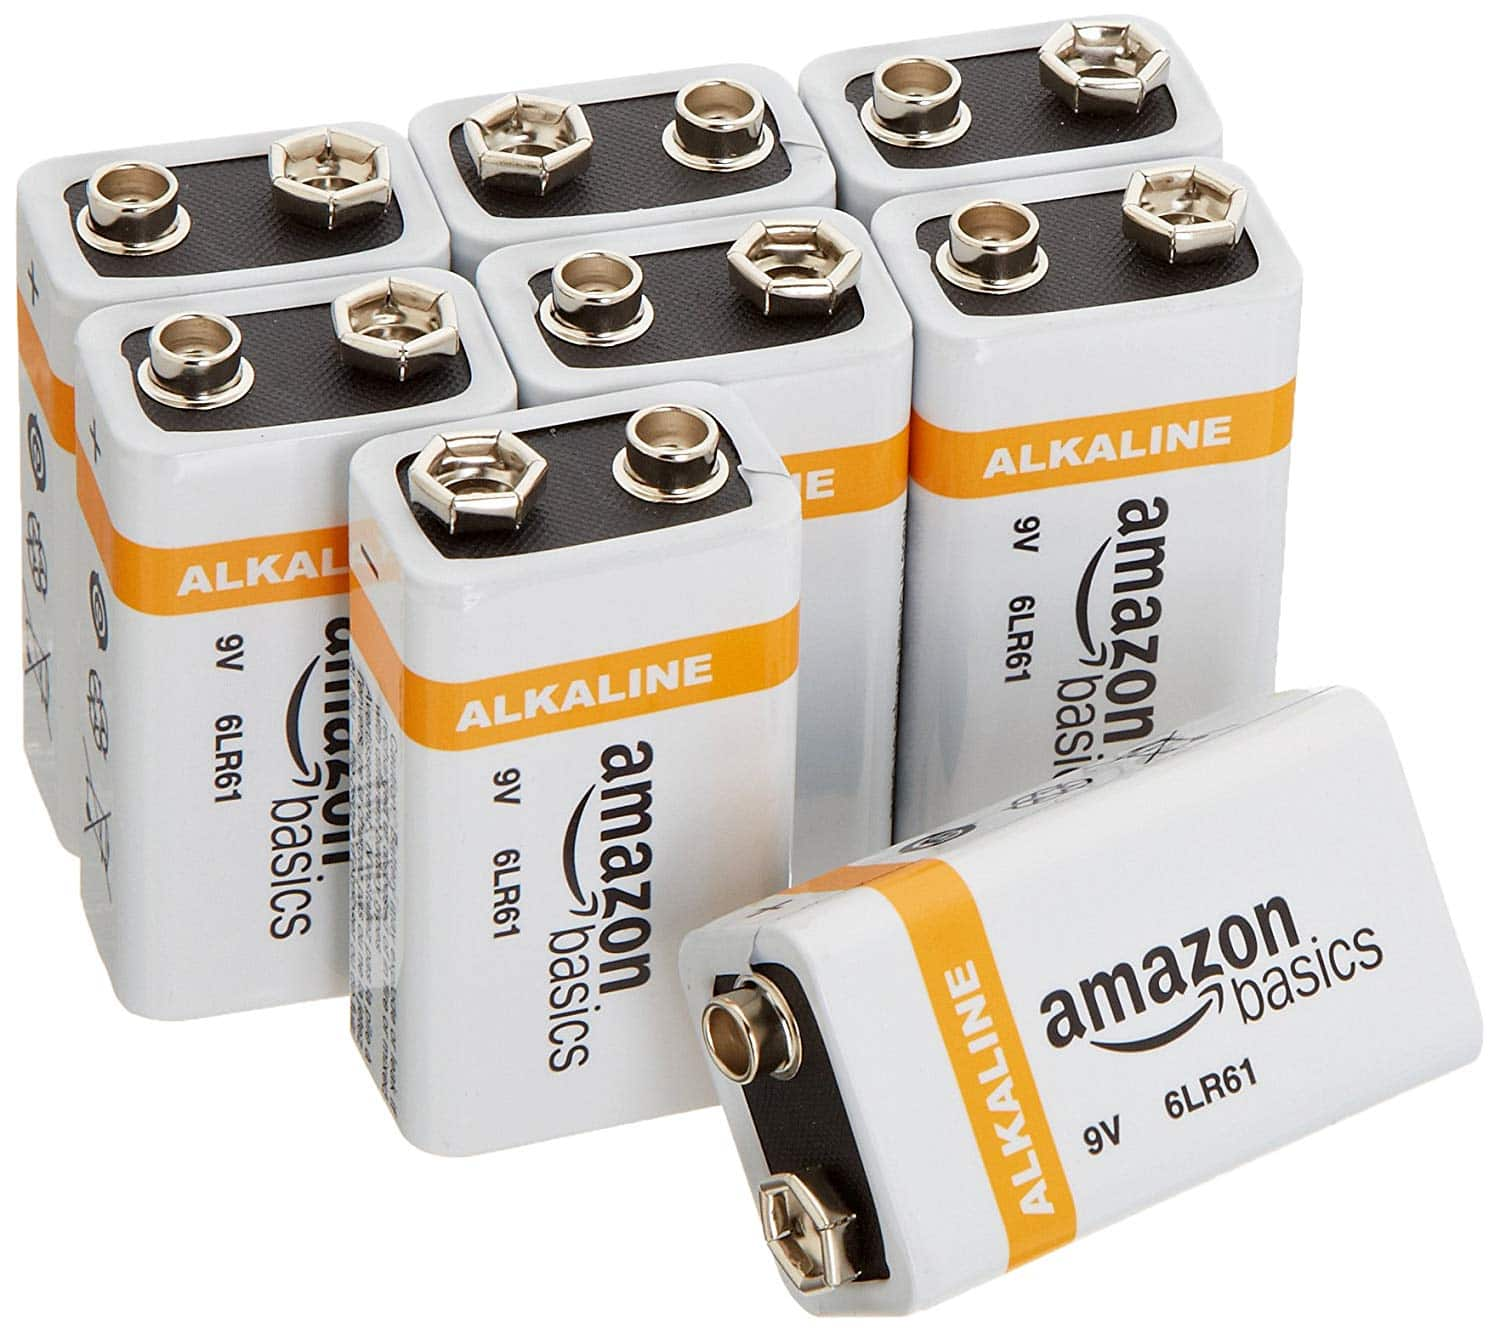 Amazon 8 pack 9v battery: $9.74 - 25% subscribe & save = $7.31